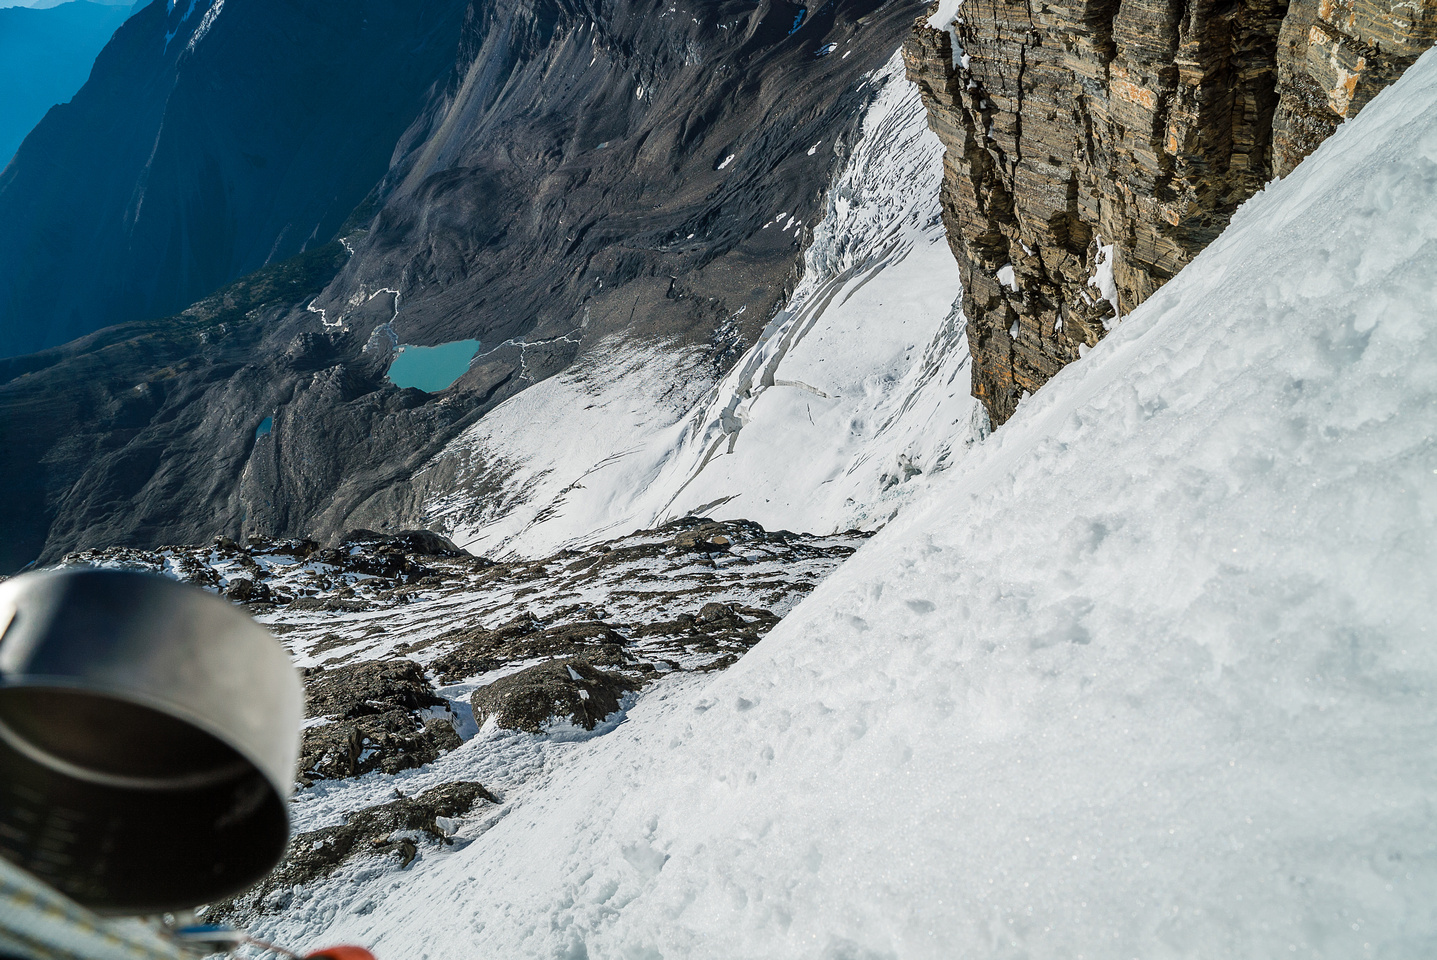 Looking down the 2nd couloir.